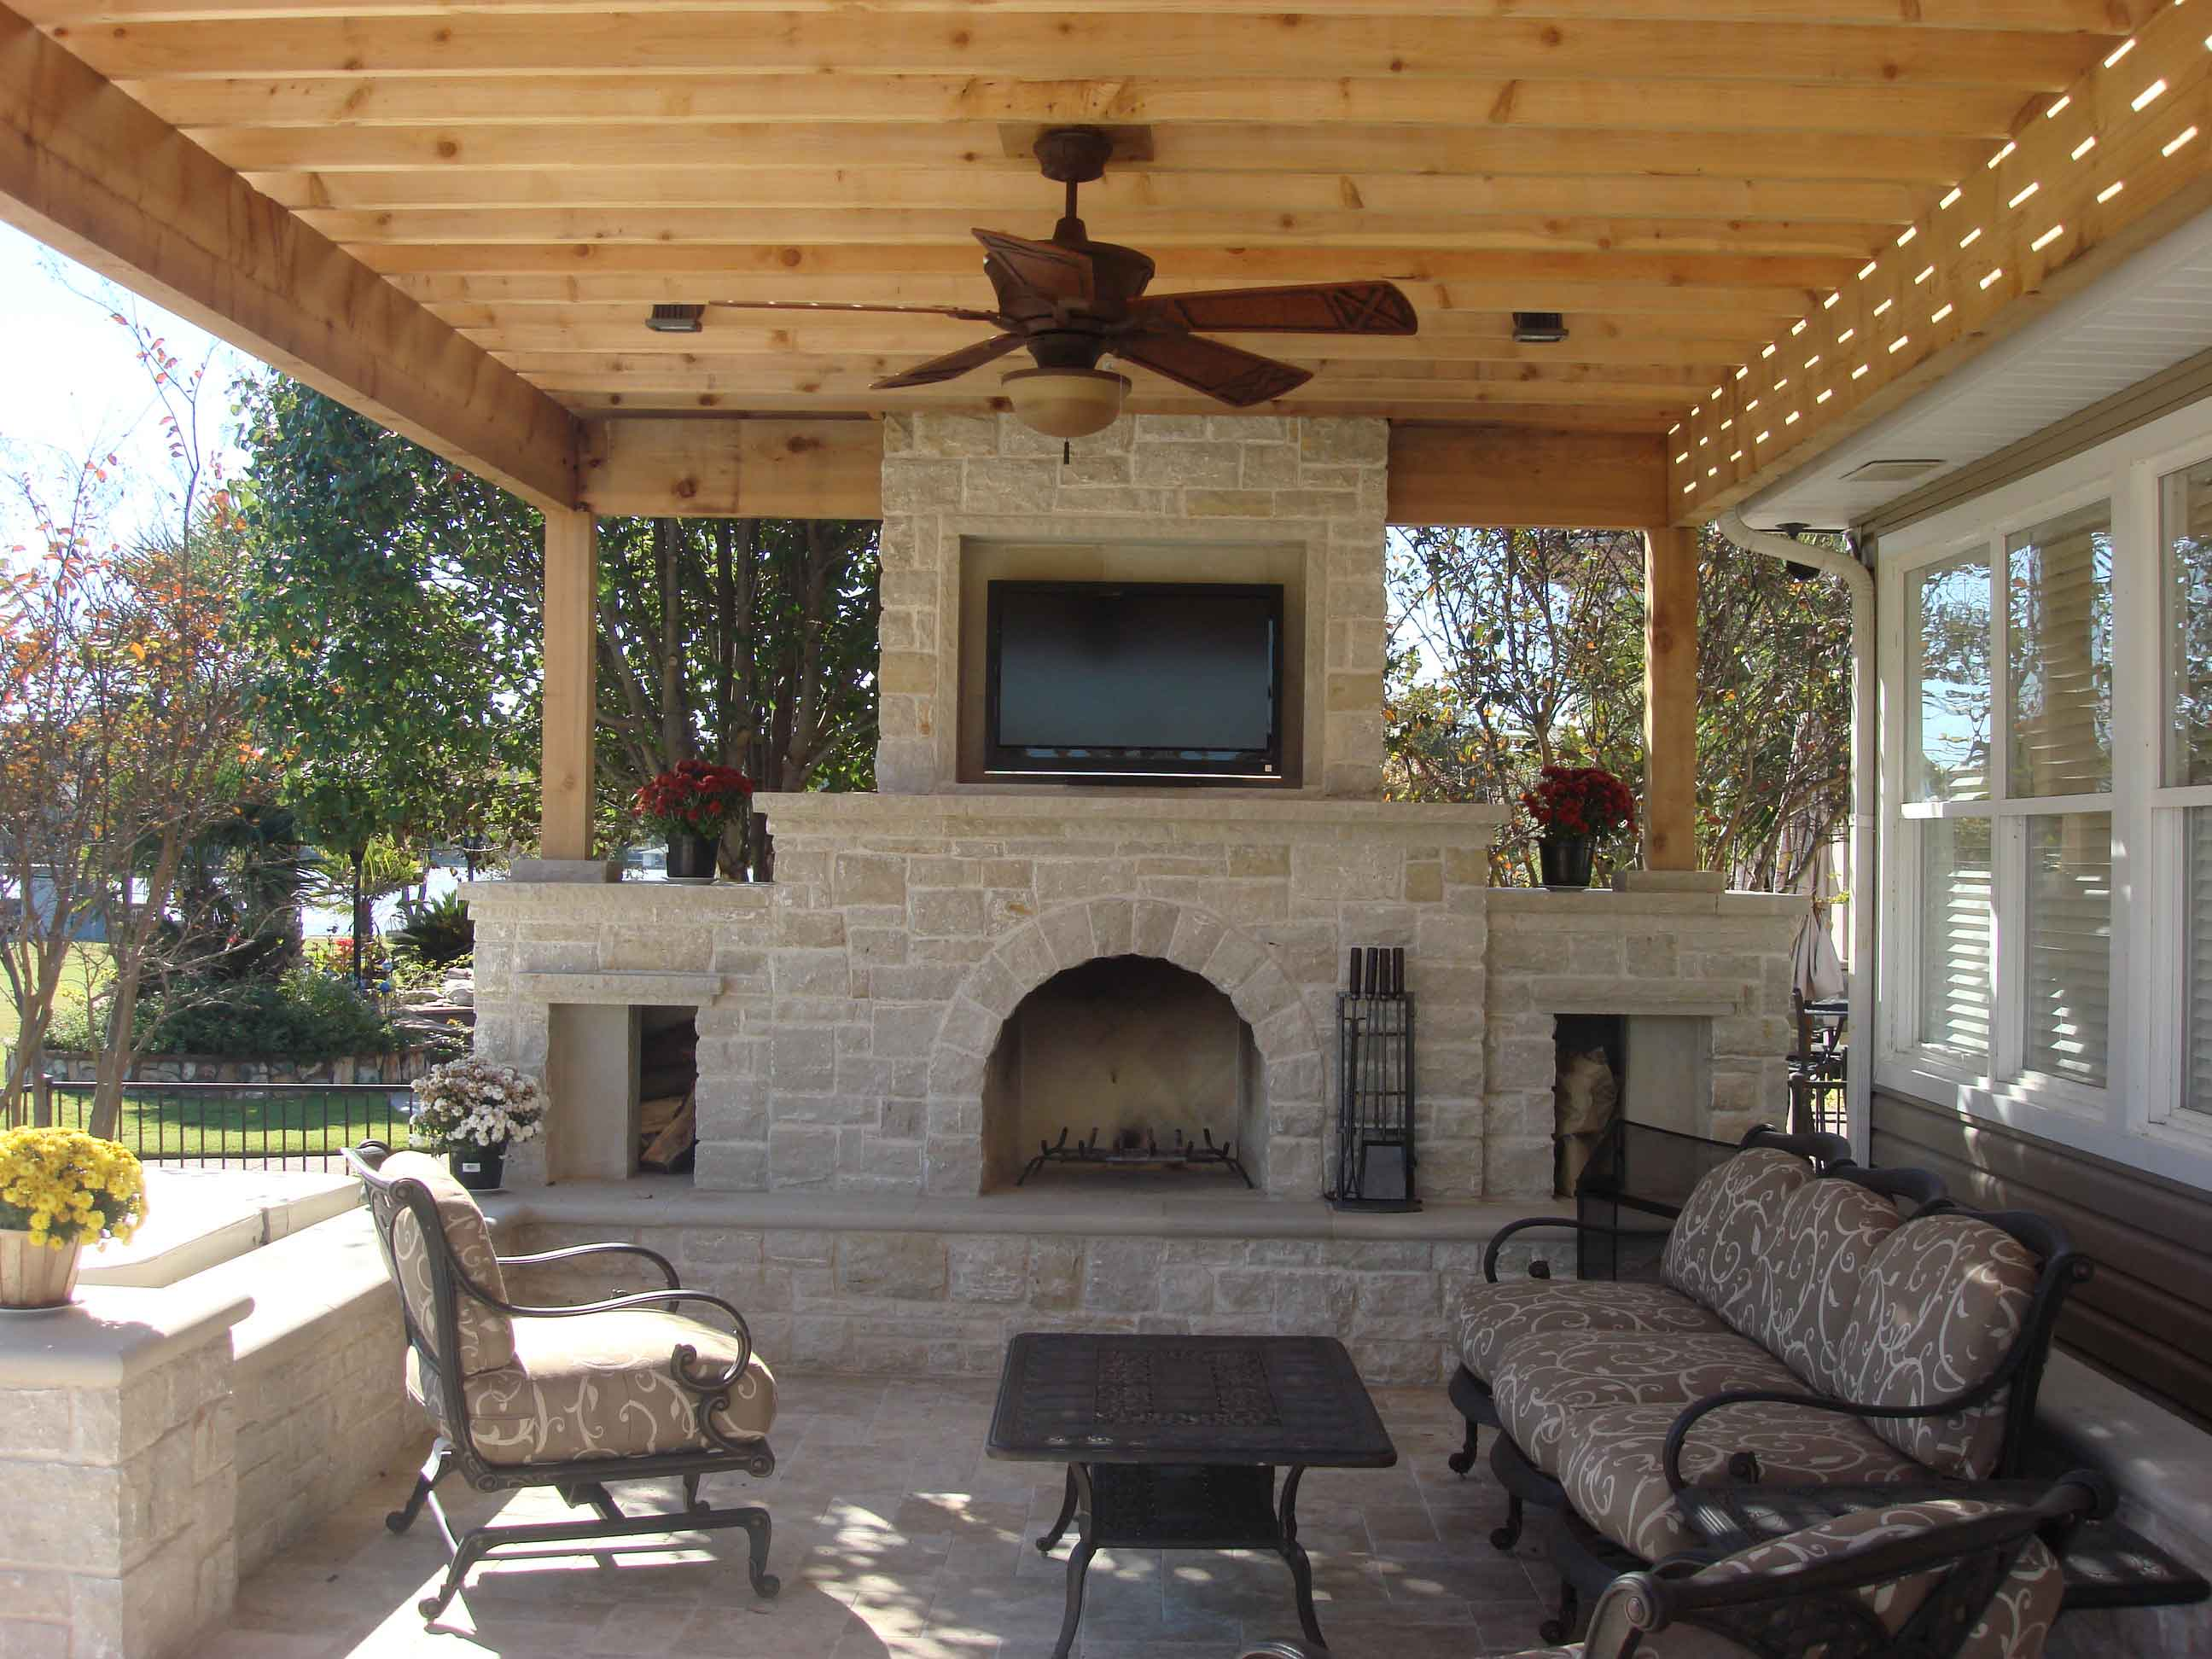 Outdoor Living Areas Cabana Fireplace Kitchen